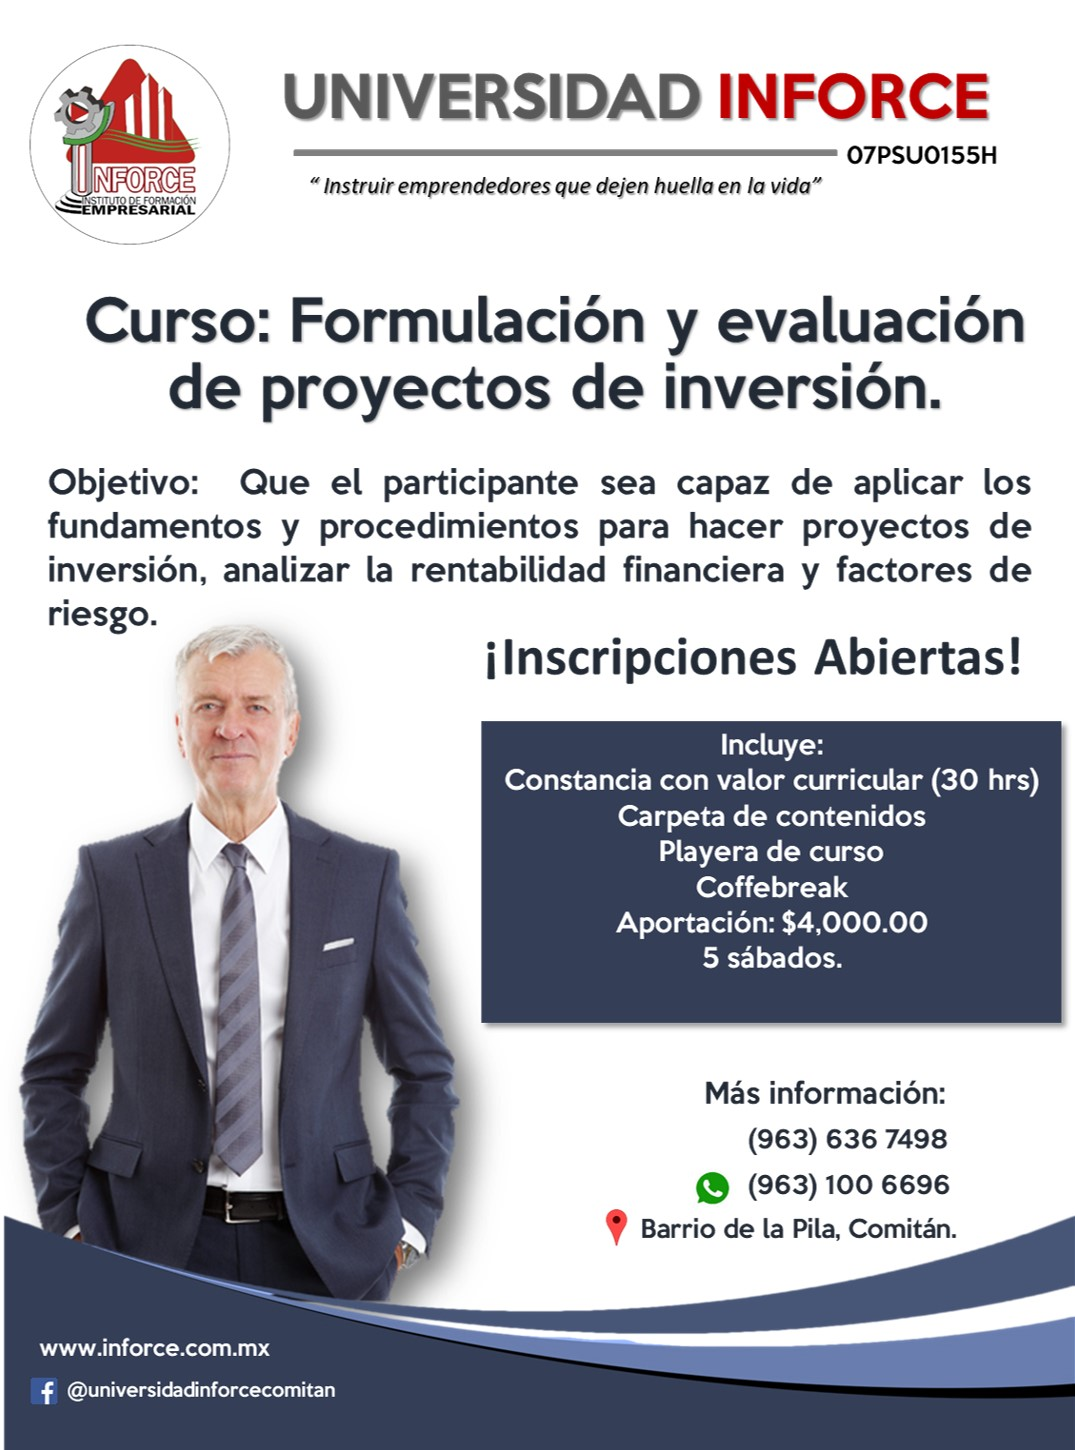 universidad-inforce-formulacion-y-evaluacion-de-proyectos-de-inversion.jpg